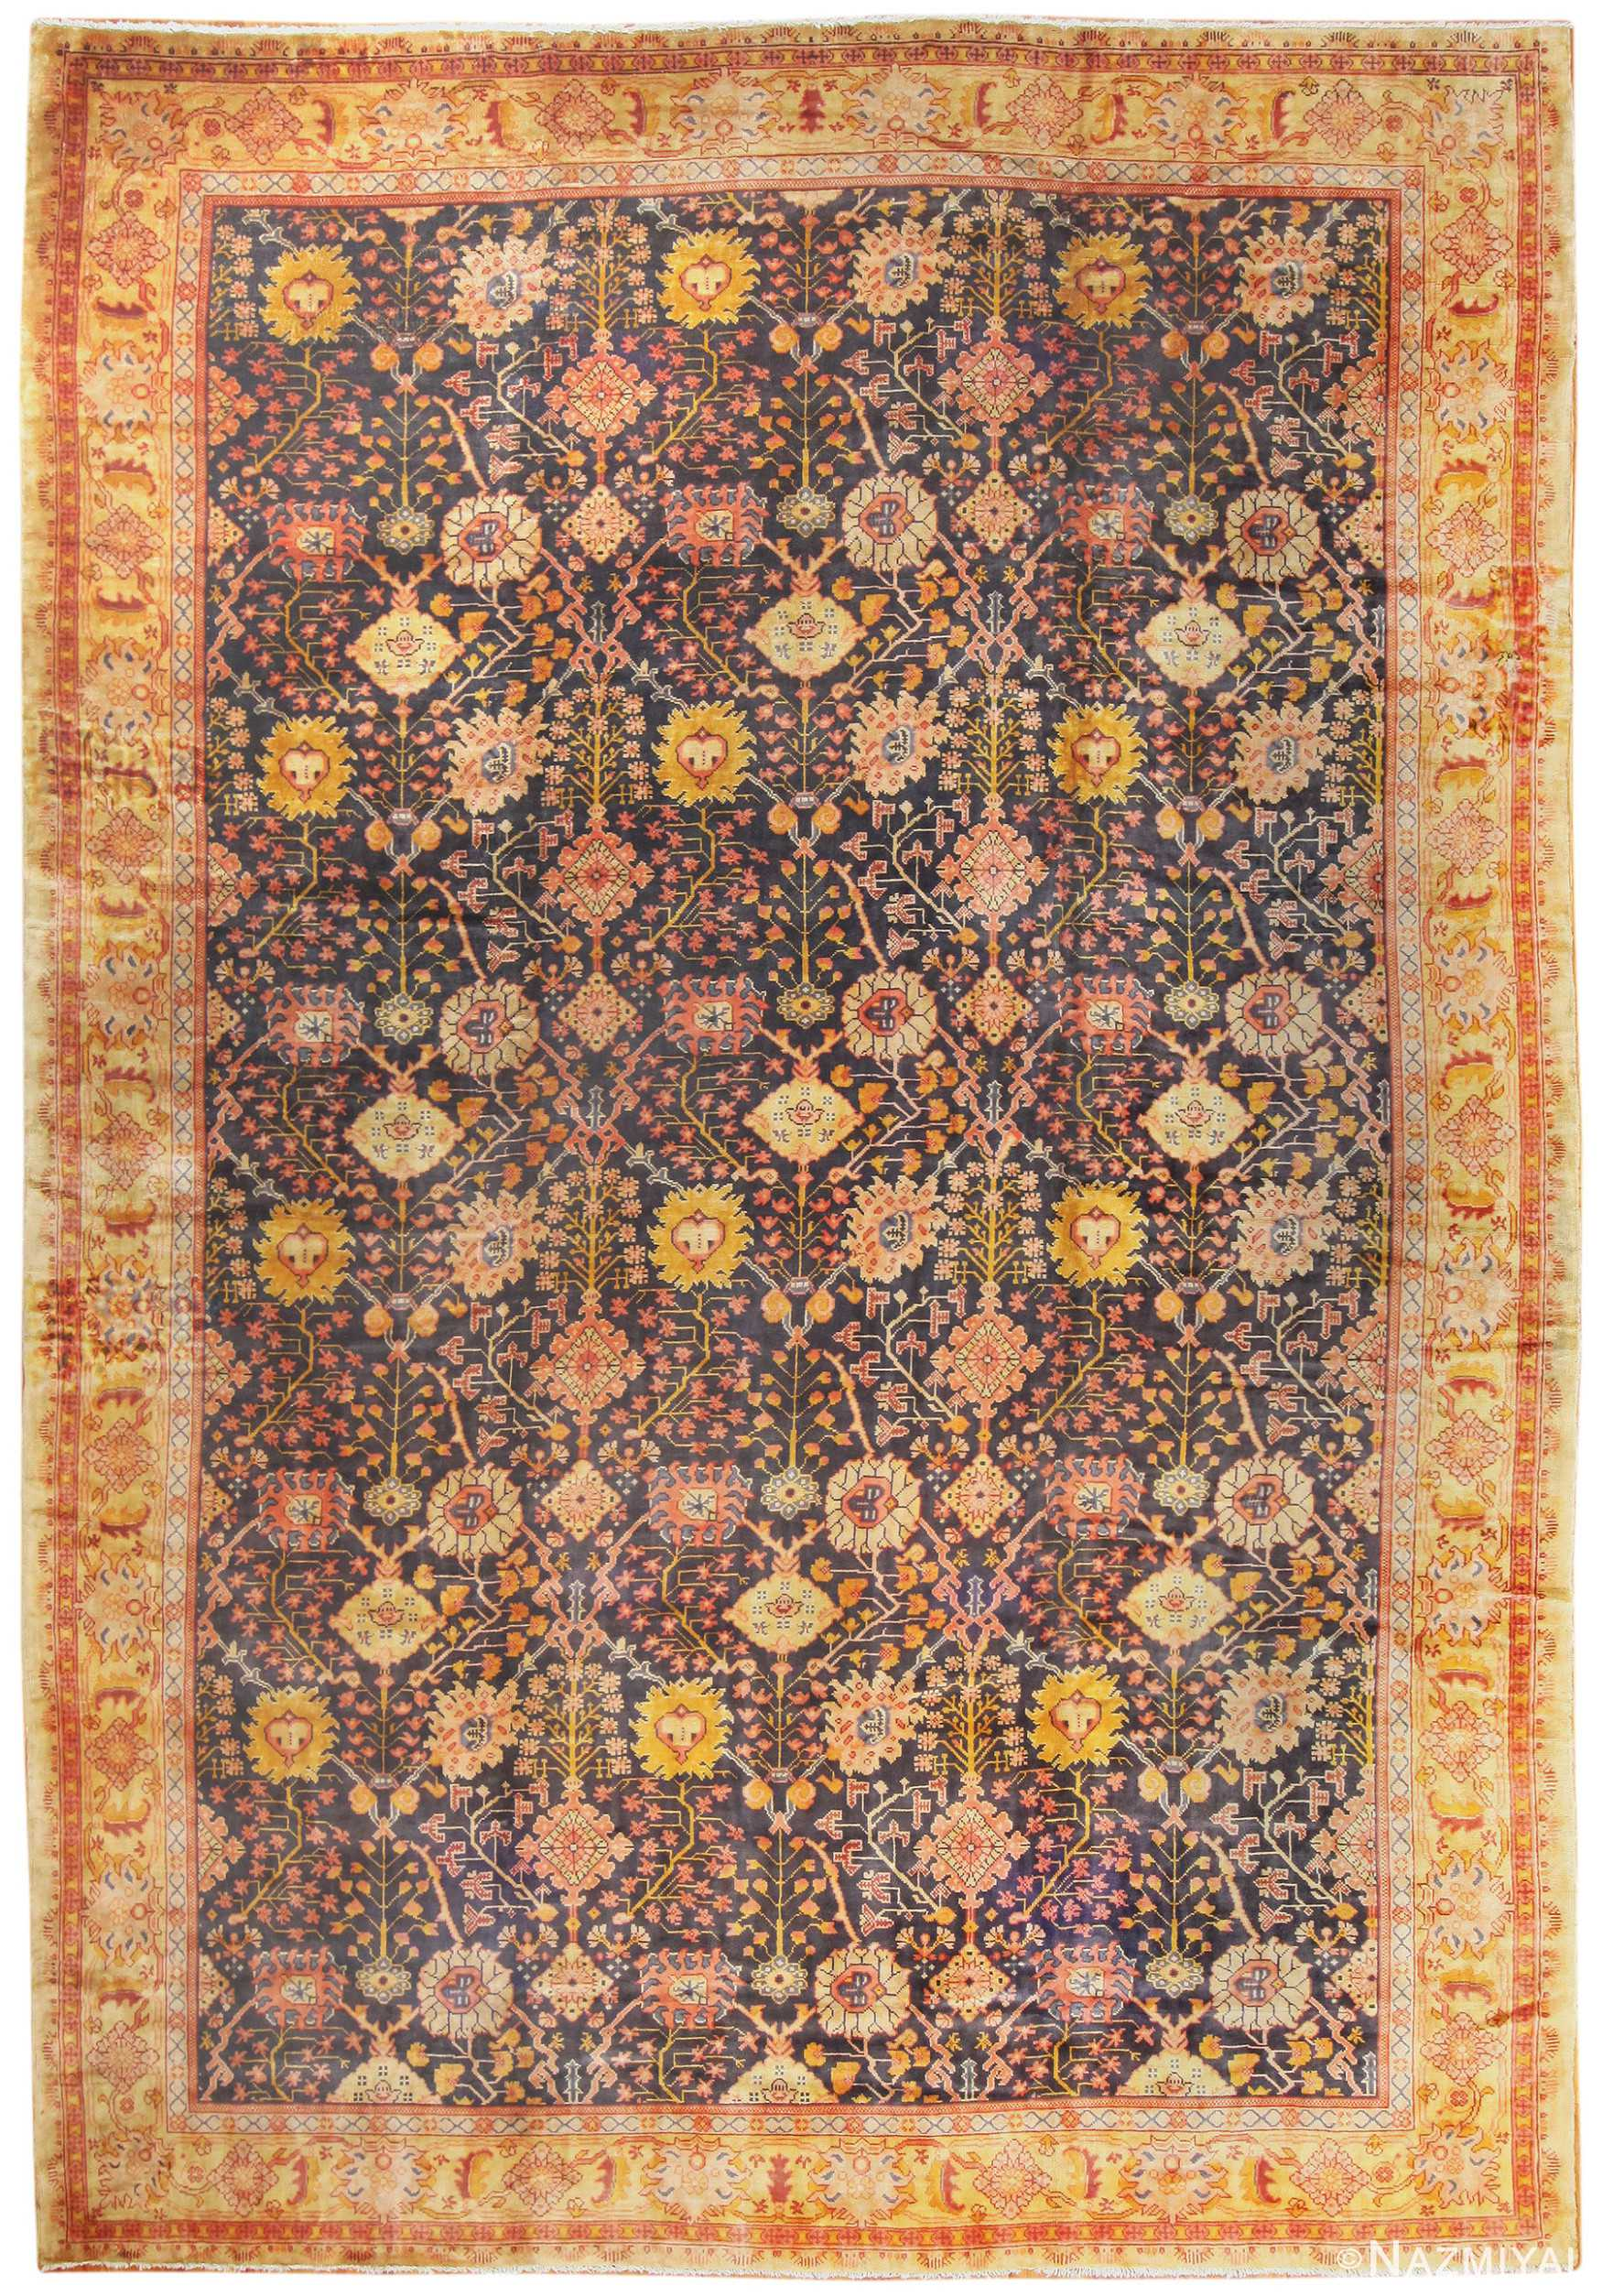 Antique Irish Arts And Crafts Rug 50336 By Nazmiyal Antique Rugs